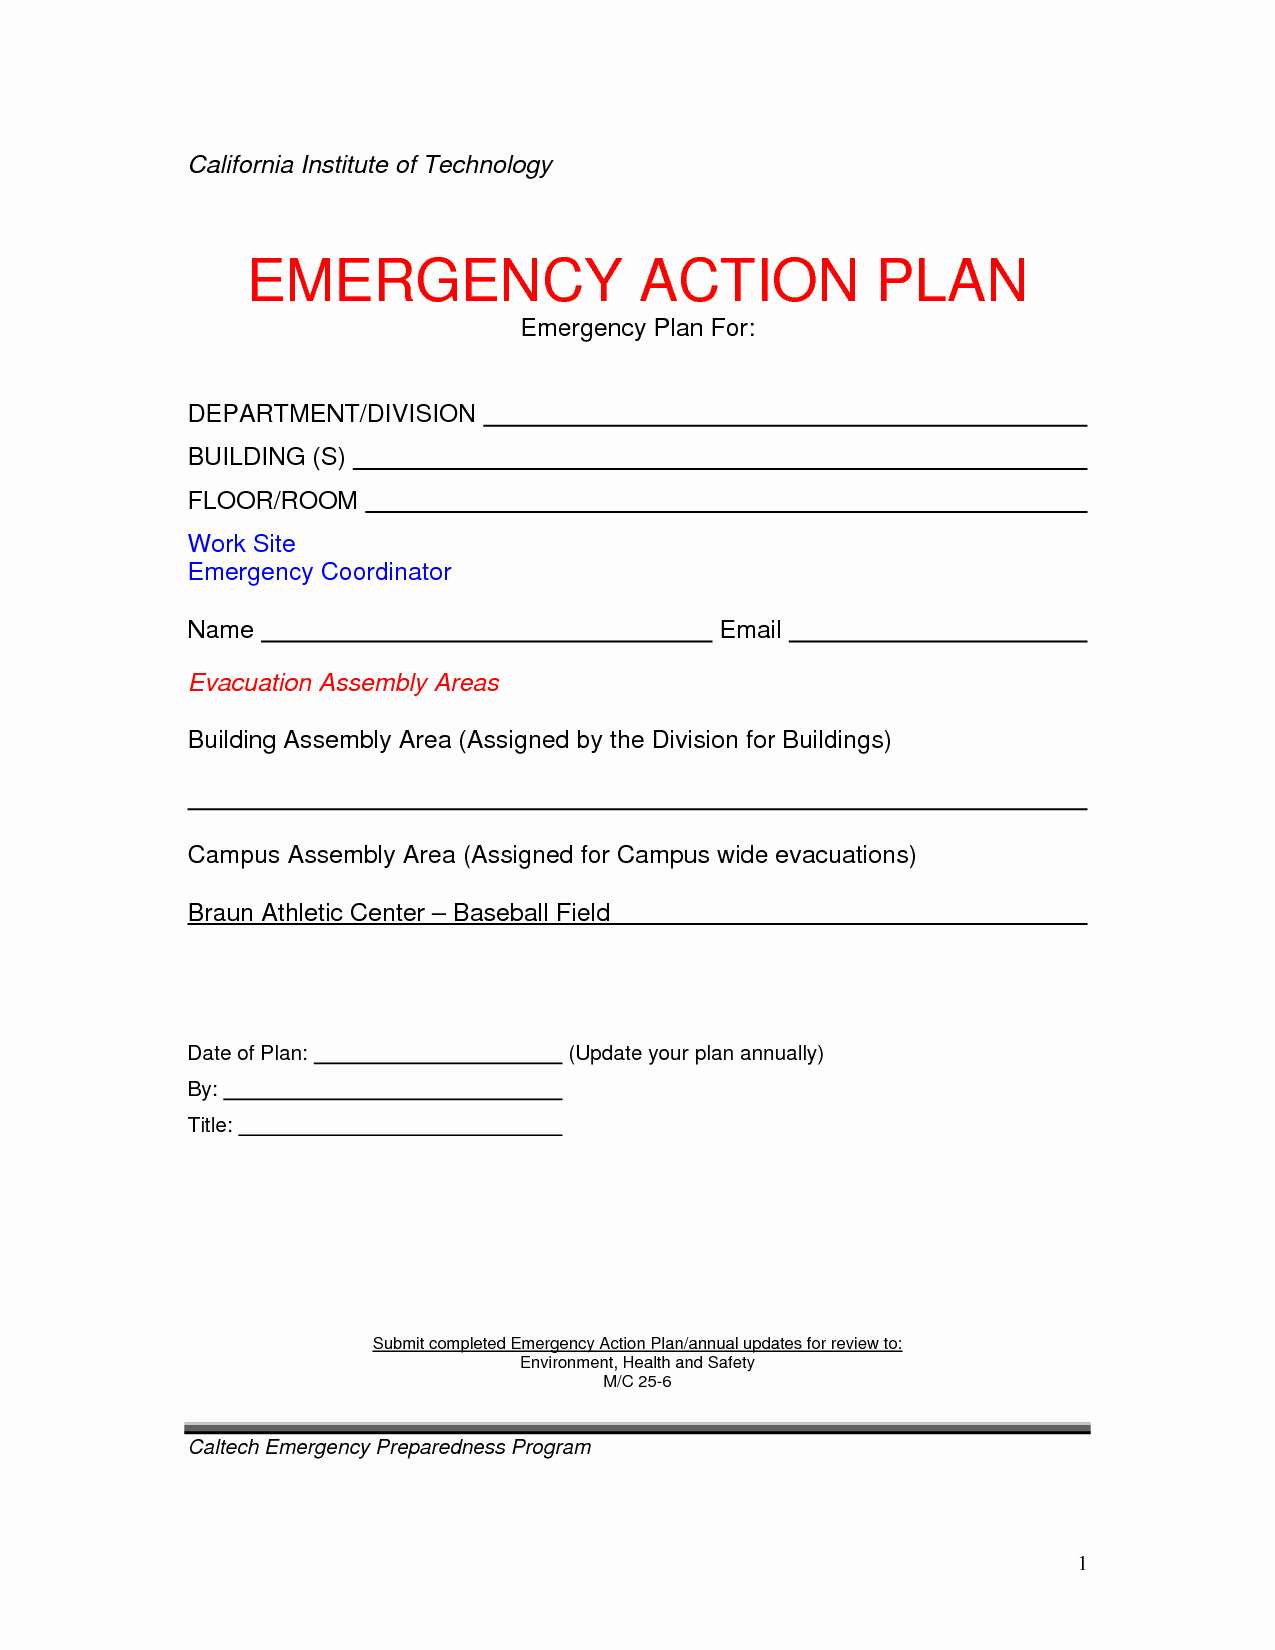 Fire Safety Plan Template Unique Emergency Action Plan Template